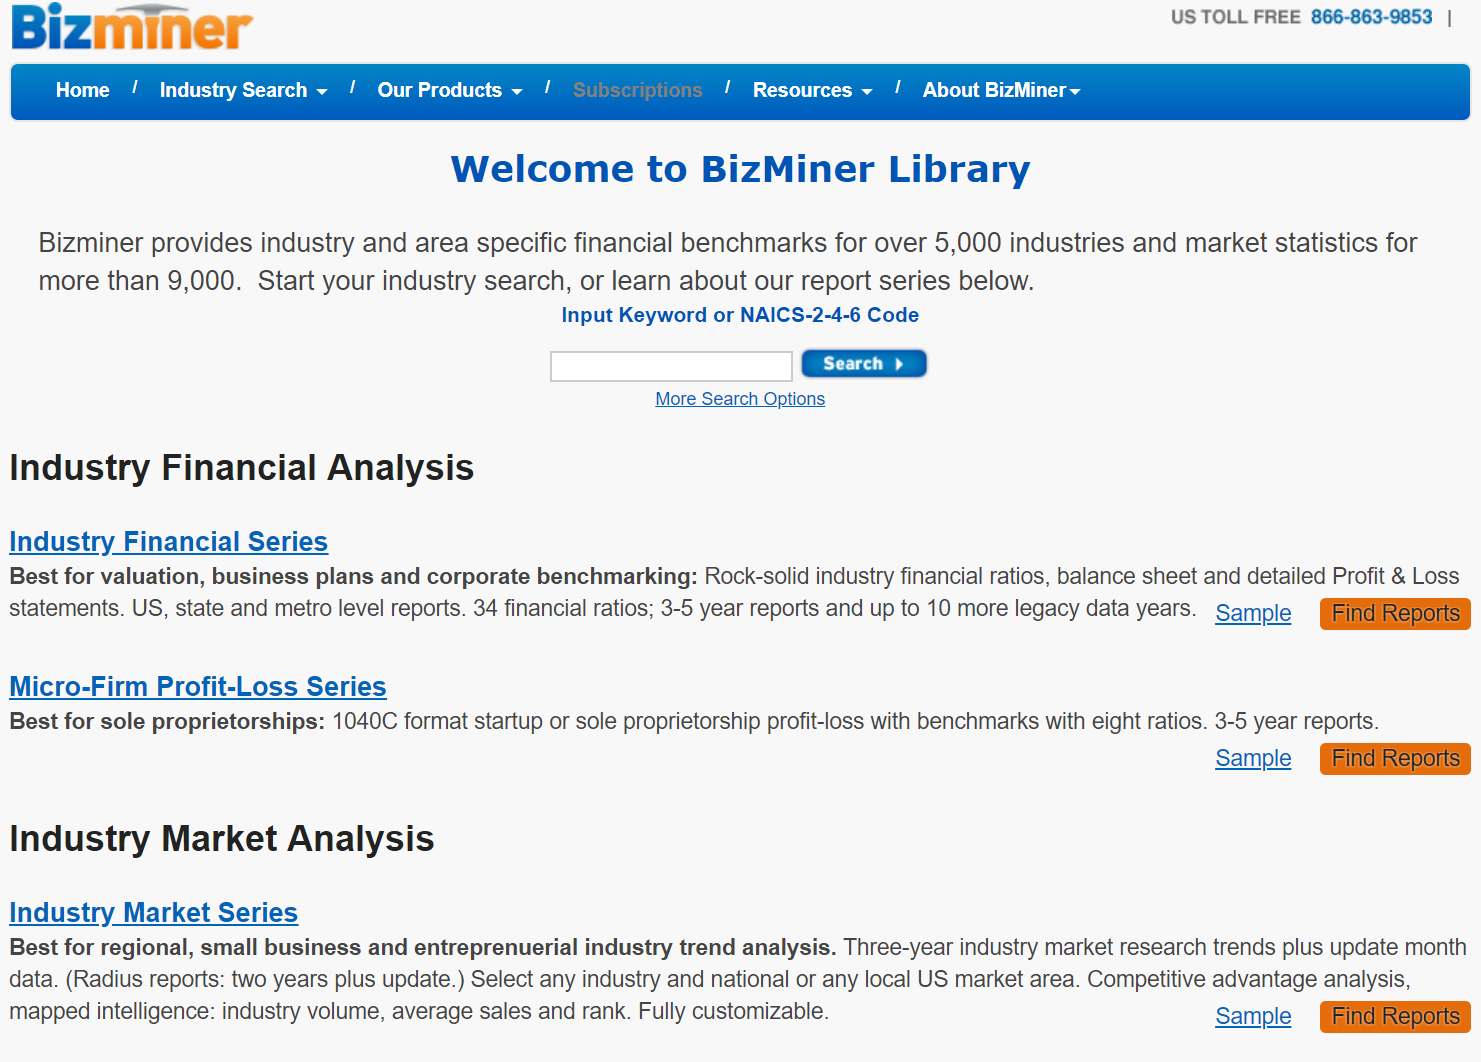 Bizminer screen image